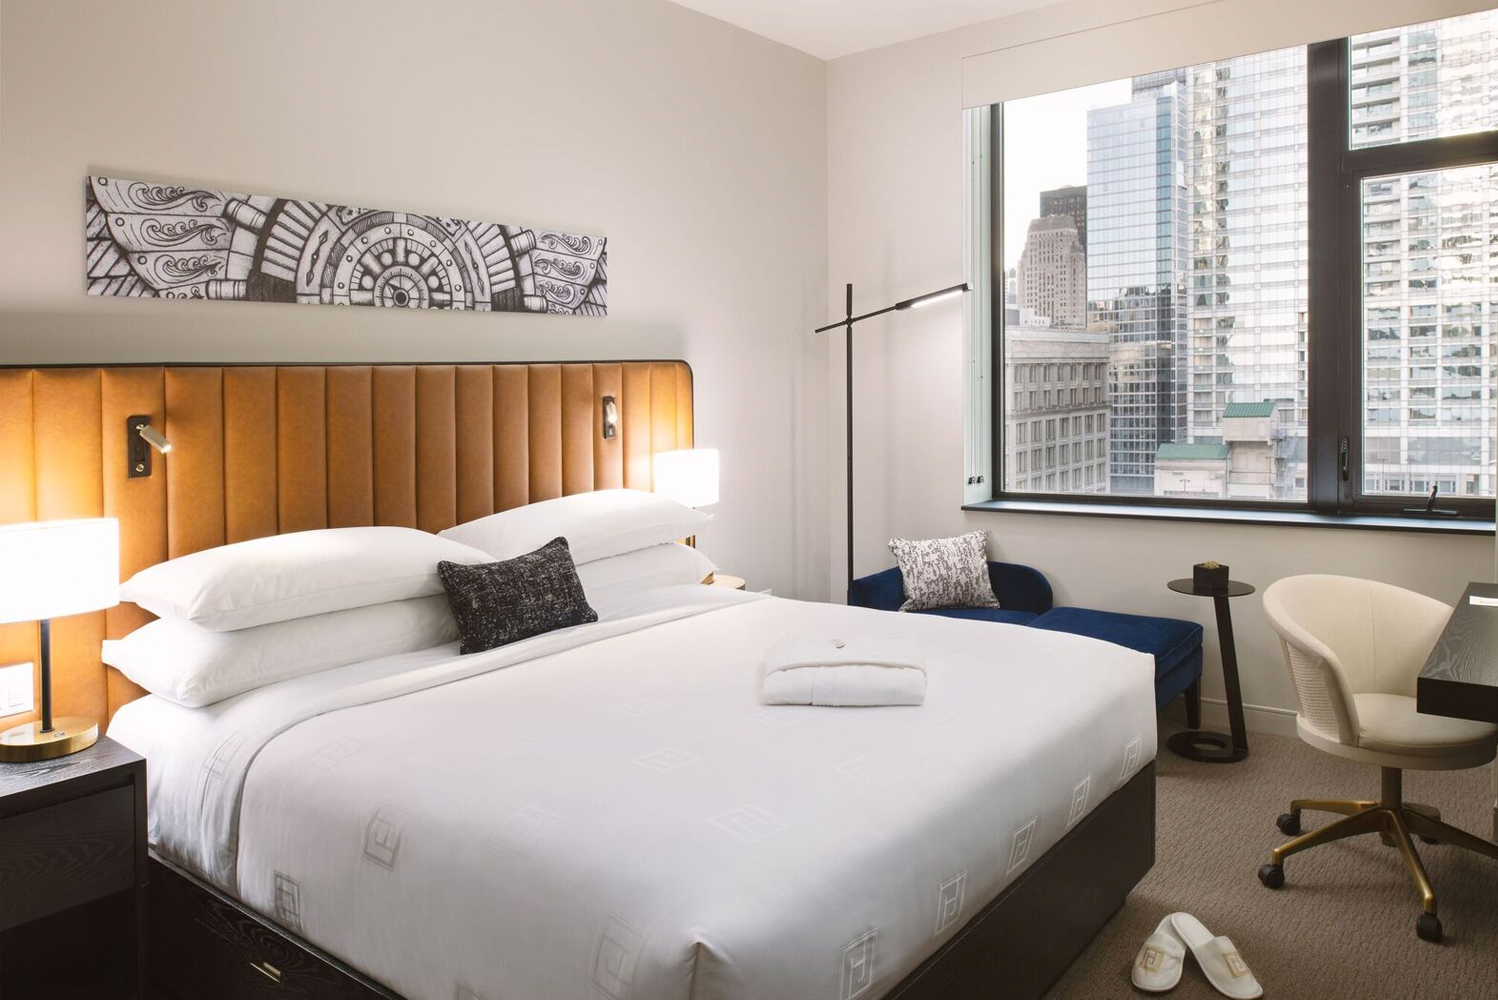 Oxford Hotels & Resorts, with Quadrum Global, enlisted the Gettys Group and Samuelson Furniture to bring life back into Hotel Julian.